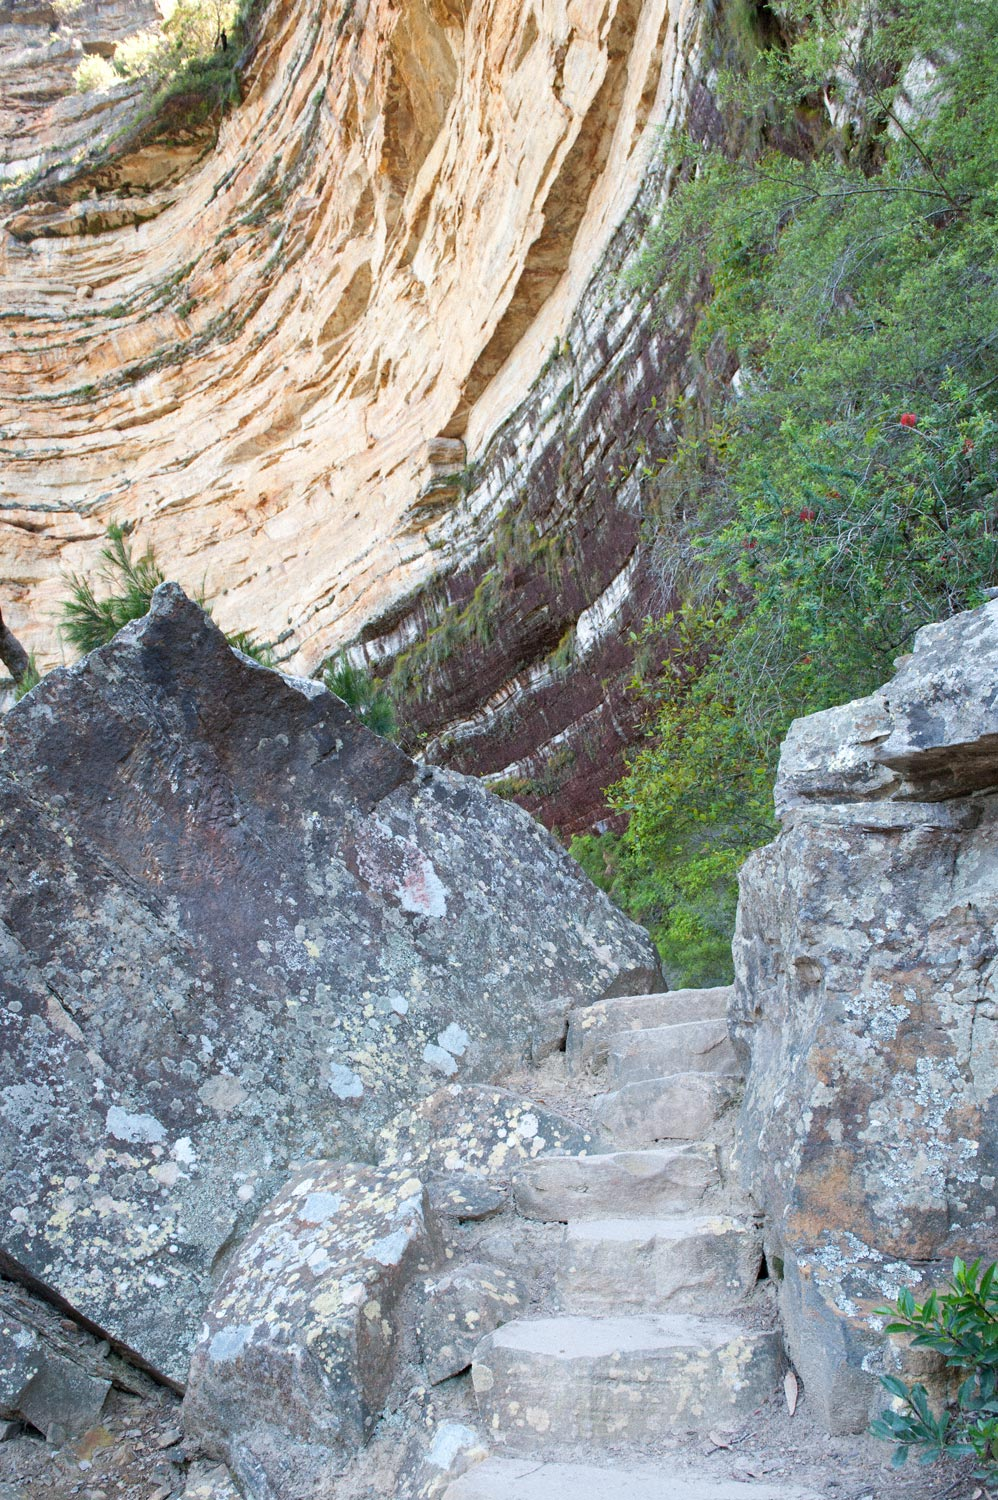 Warren-Hinder-LR-National-Pass-stairs-and-sandstone-wall-PathWentworth-Falls.jpg